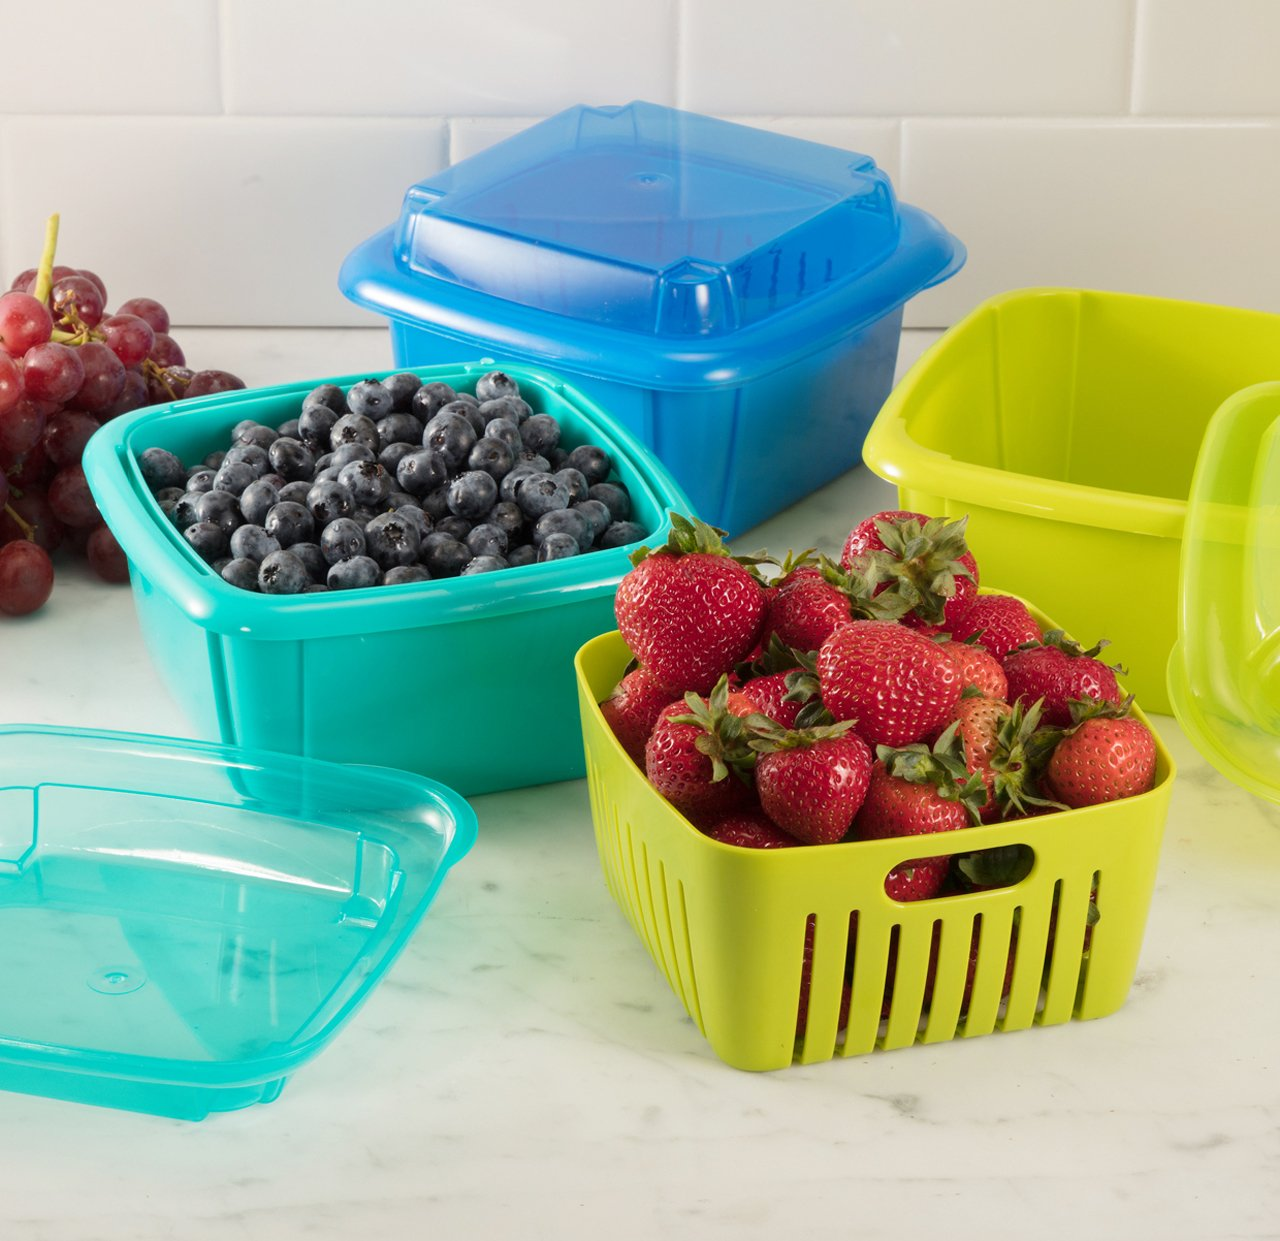 Amazon.com: Hutzler 3-in-1 Berry Box, Red: Berry Bowl: Kitchen & Dining